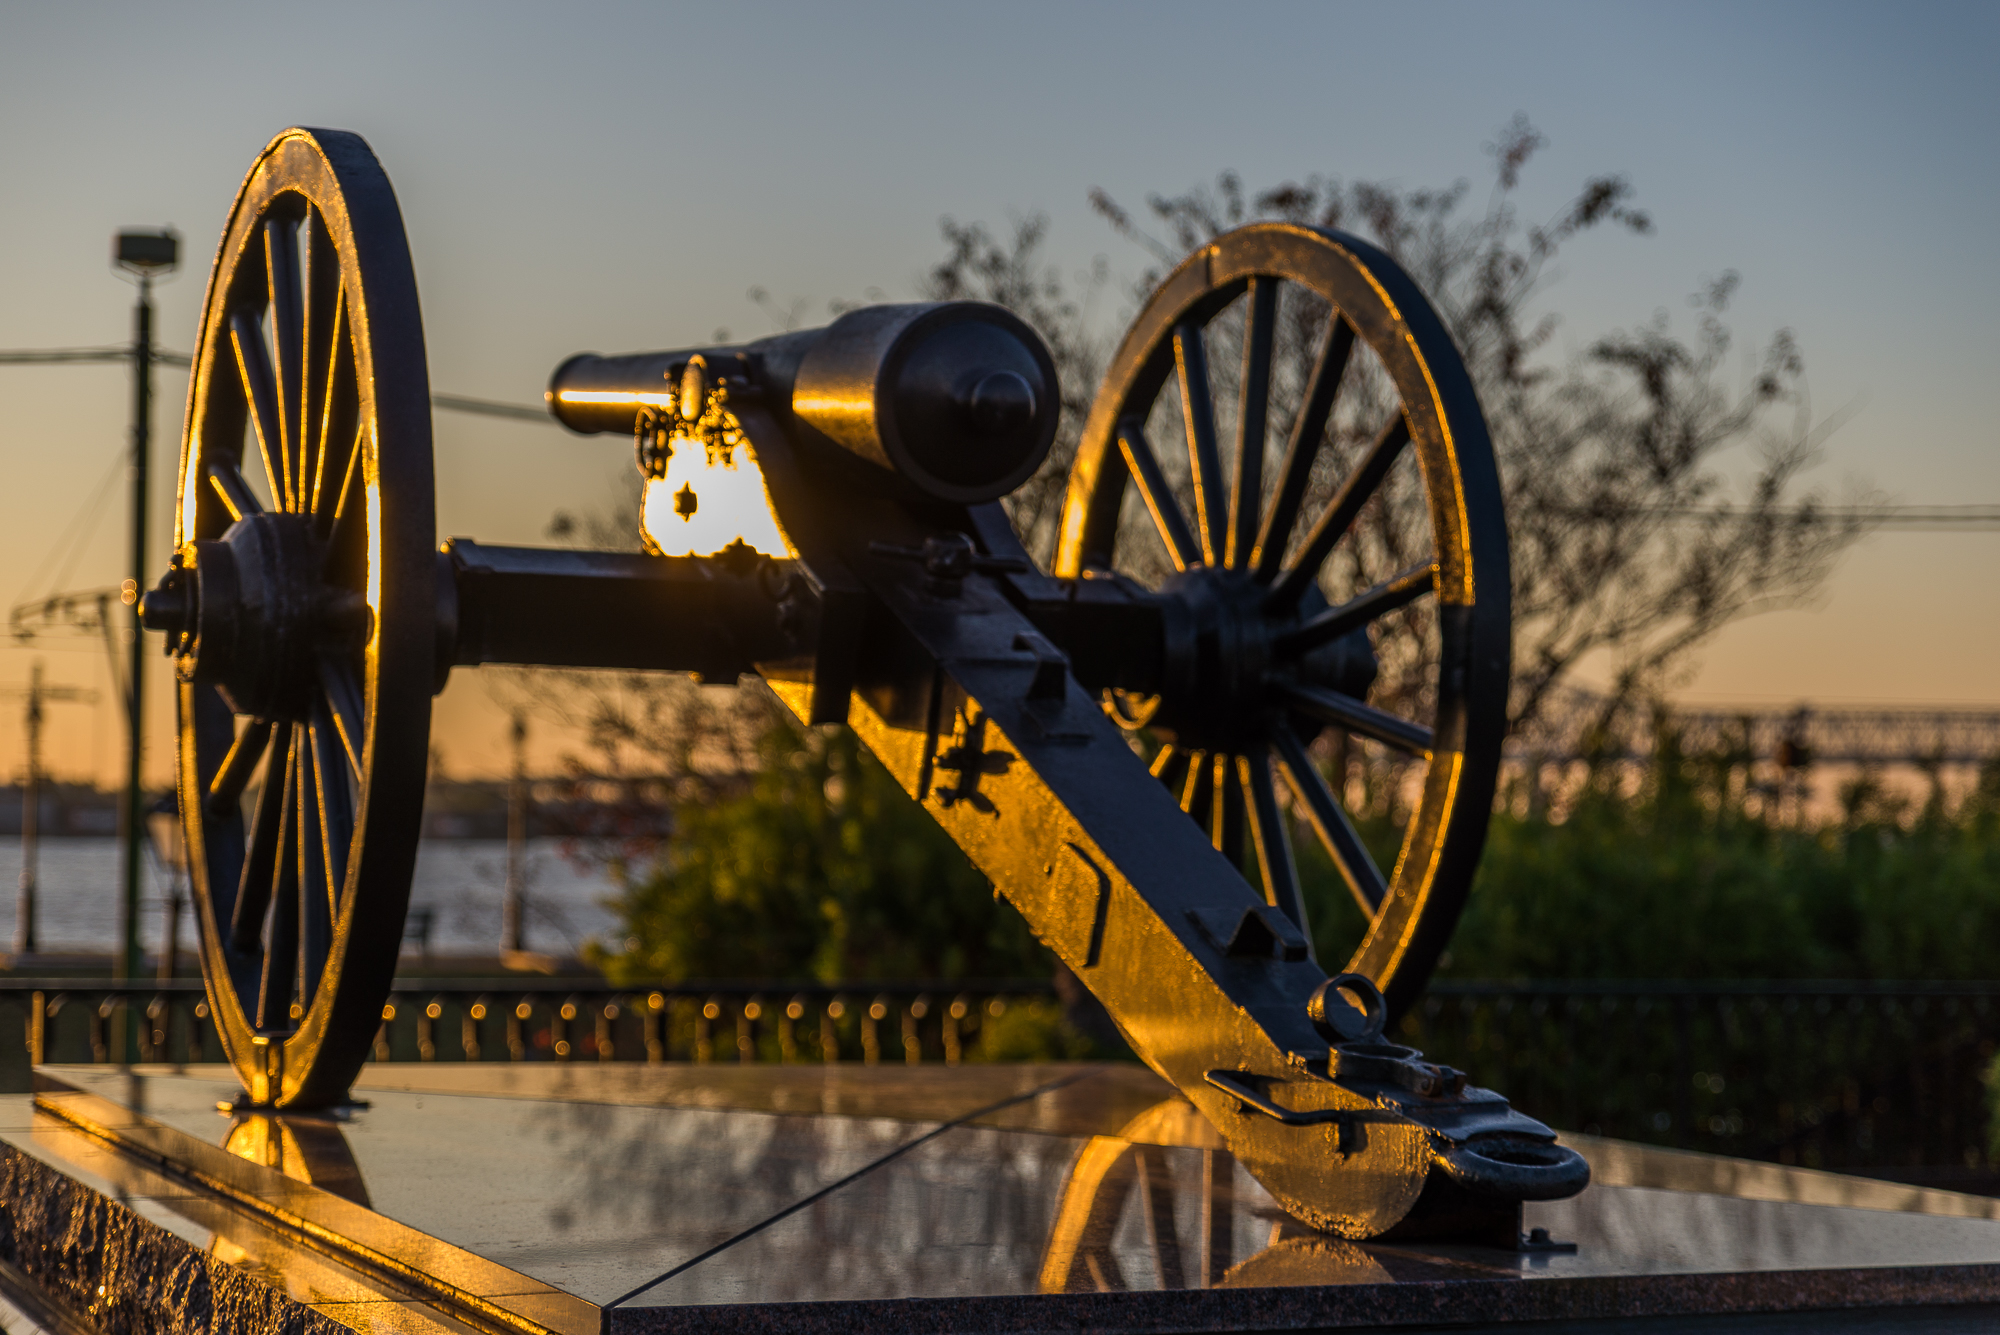 Golden Cannon Glow